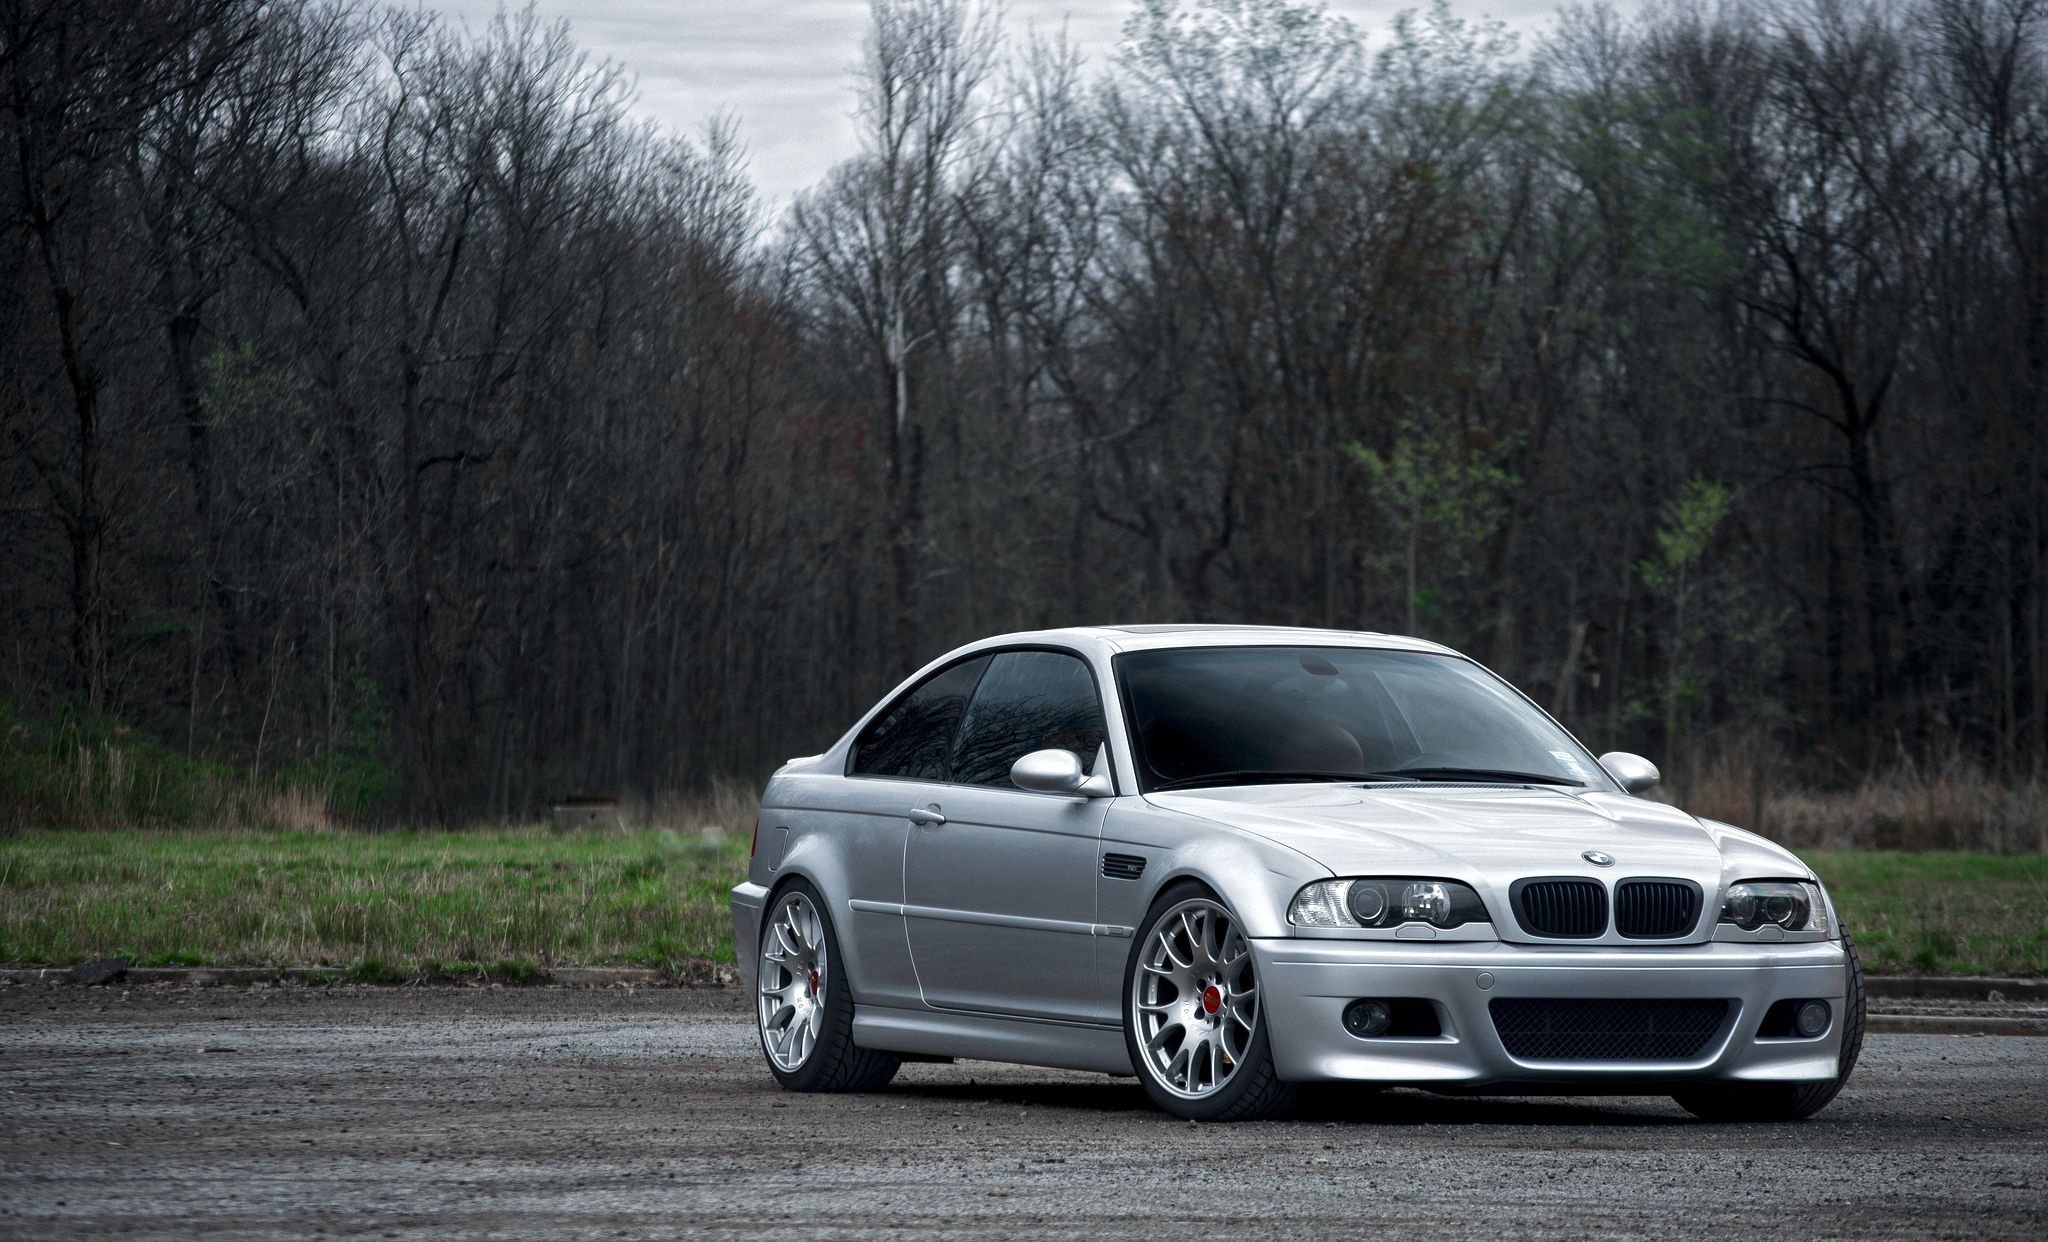 Bmw E46 M3 Wallpapers Top Free Bmw E46 M3 Backgrounds Wallpaperaccess